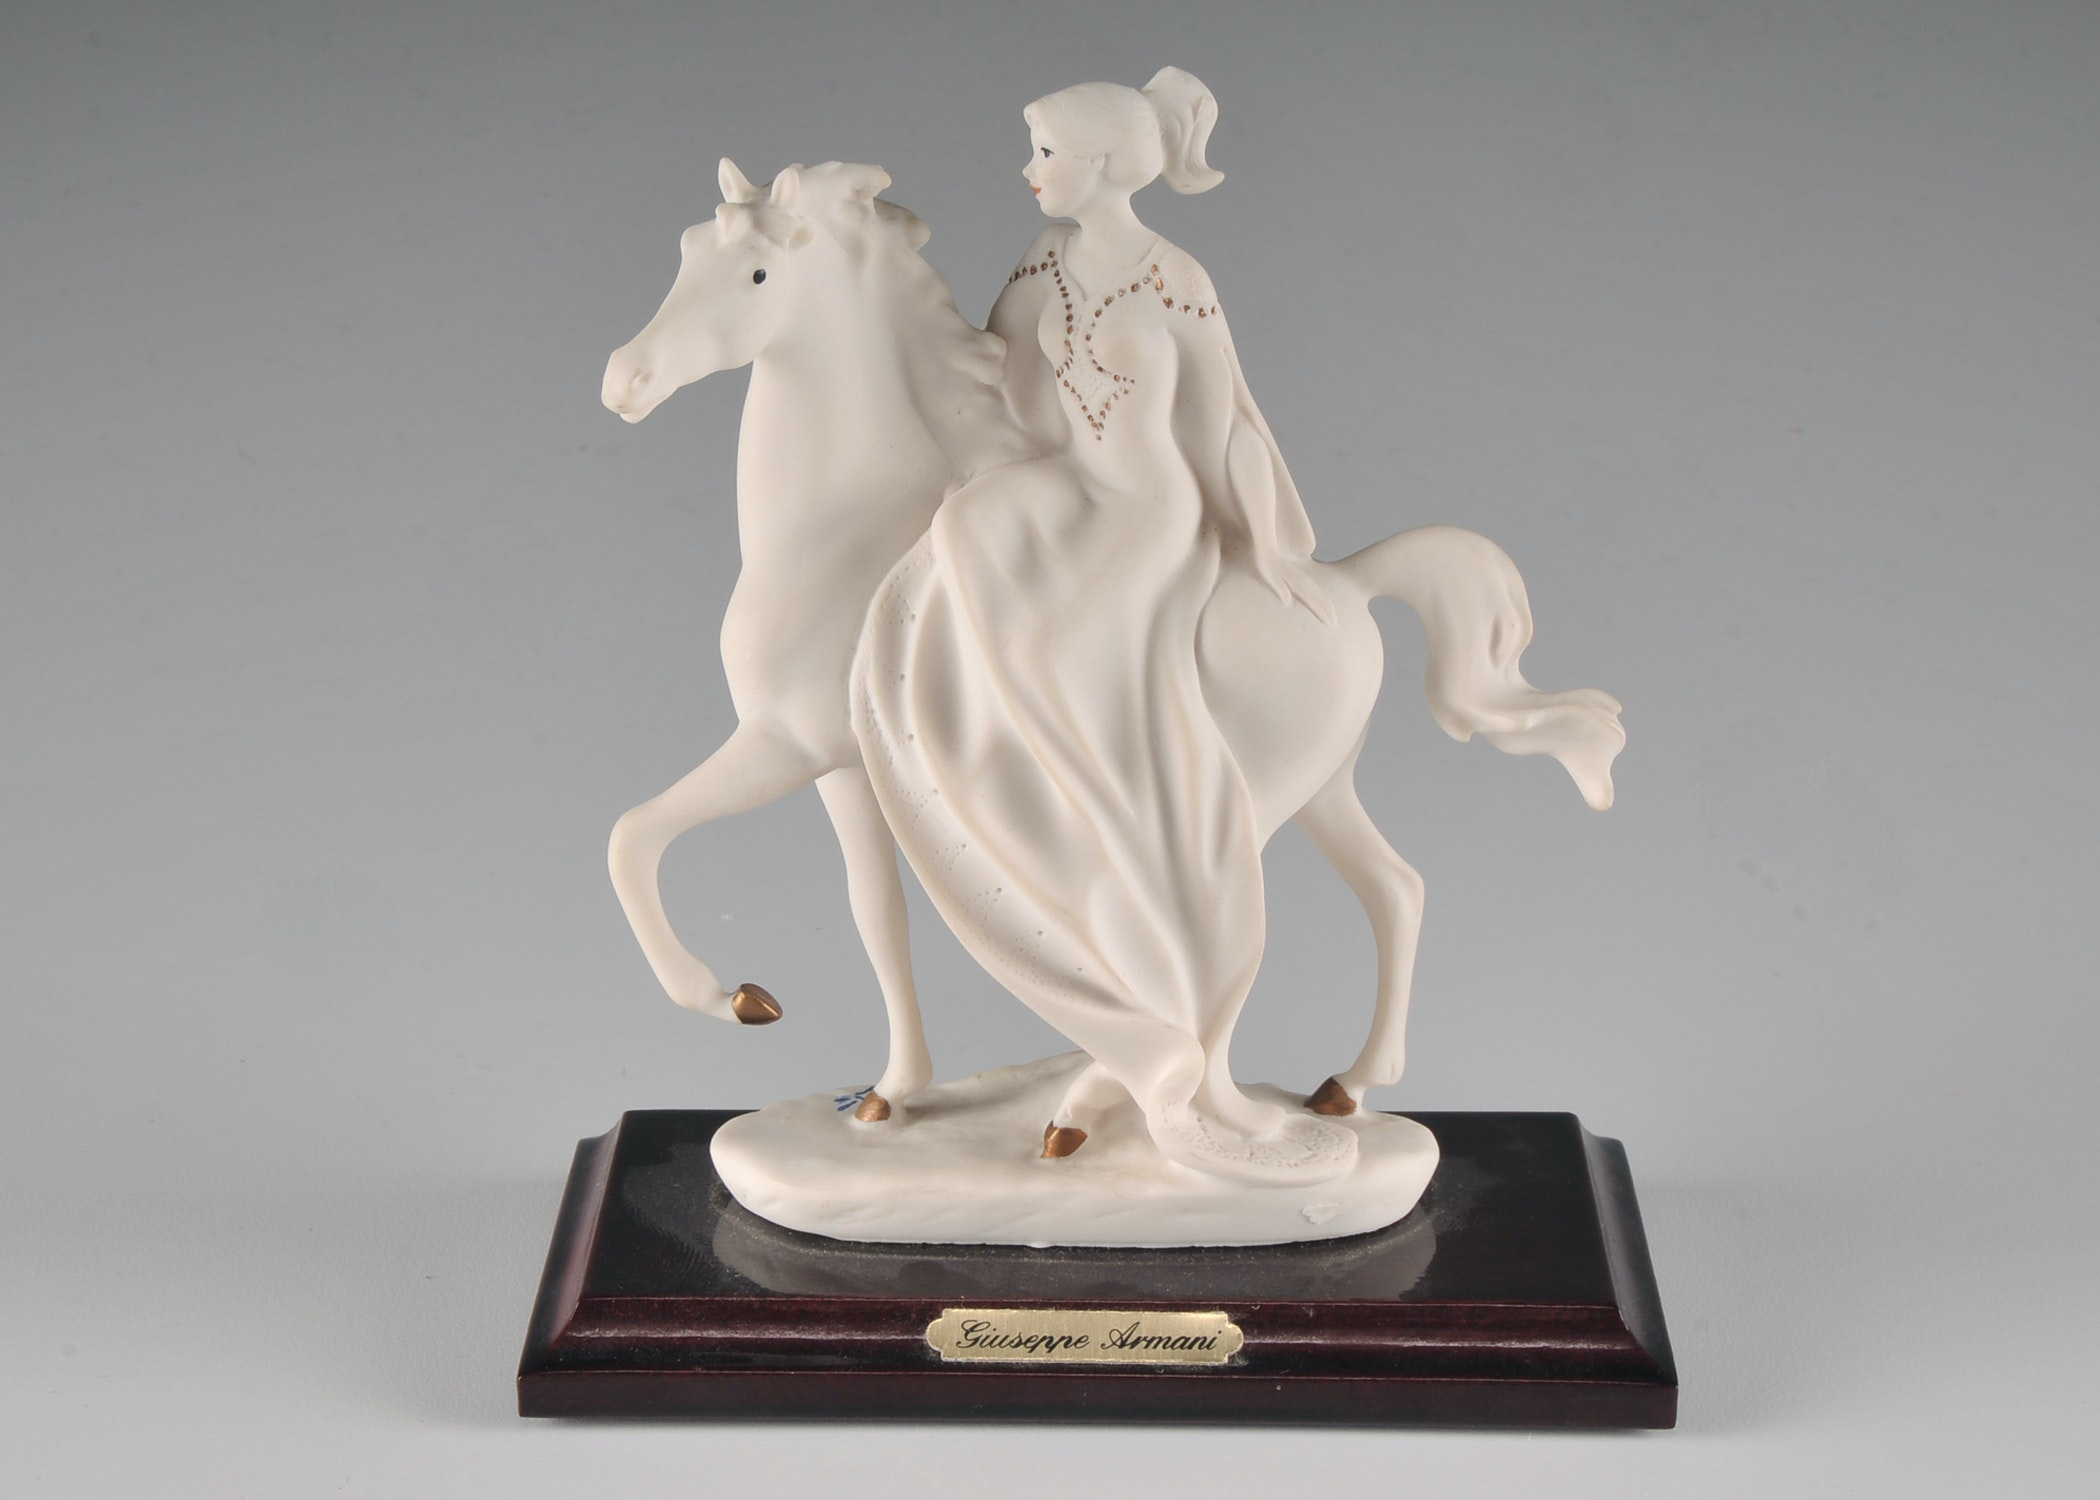 Signed Florence Giuseppe Armani Mounted Figurine of a Woman on Horseback